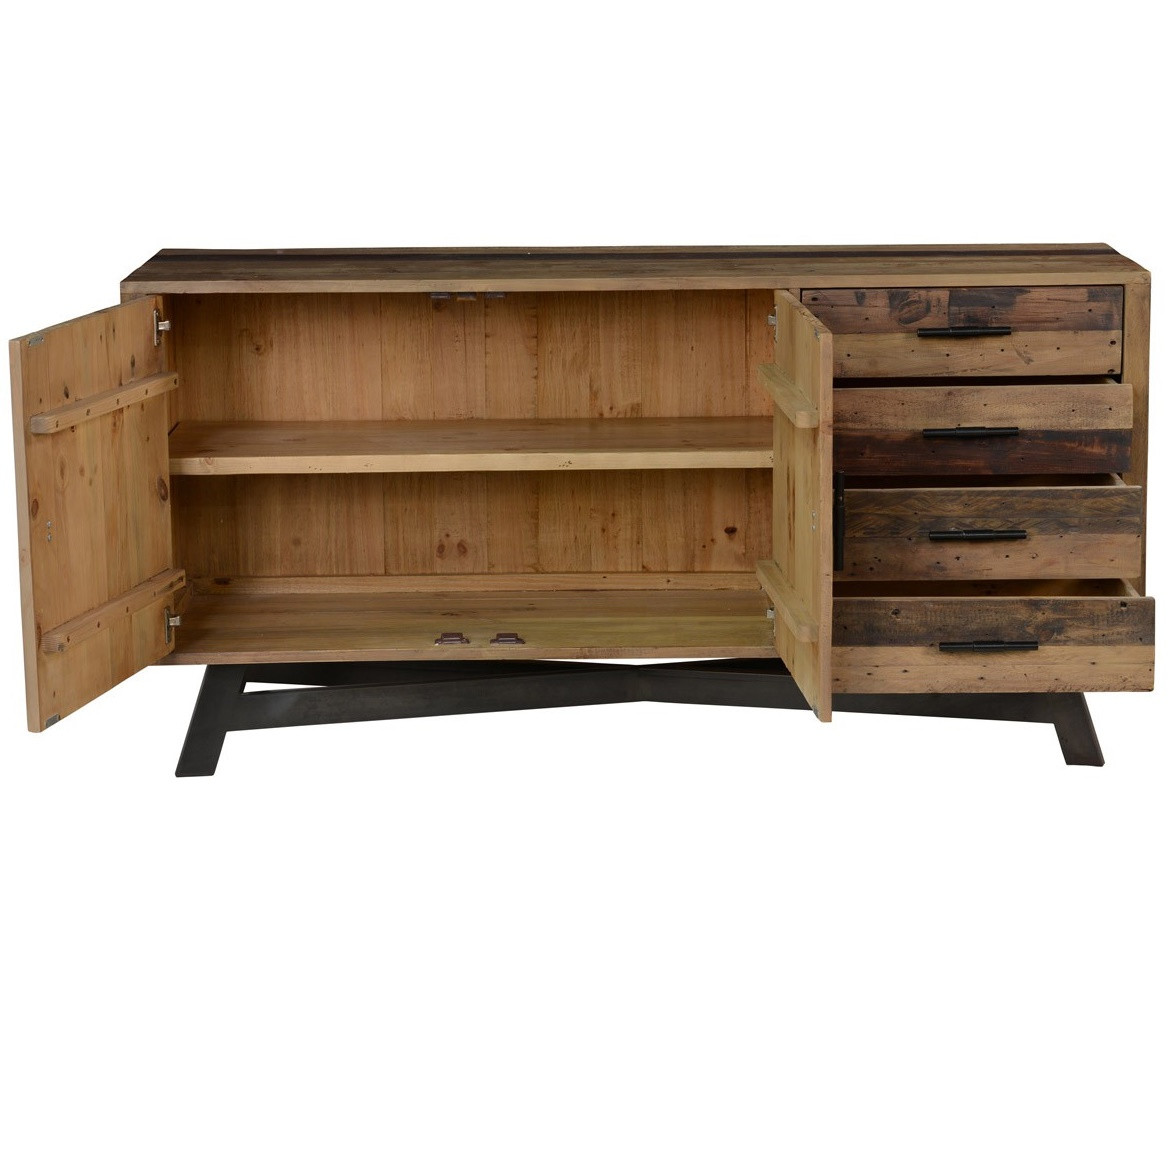 ... Solid Wood Sideboard Buffet with Doors - Farmhouse Rustic Reclaimed Wood Sideboard Buffet Zin Home